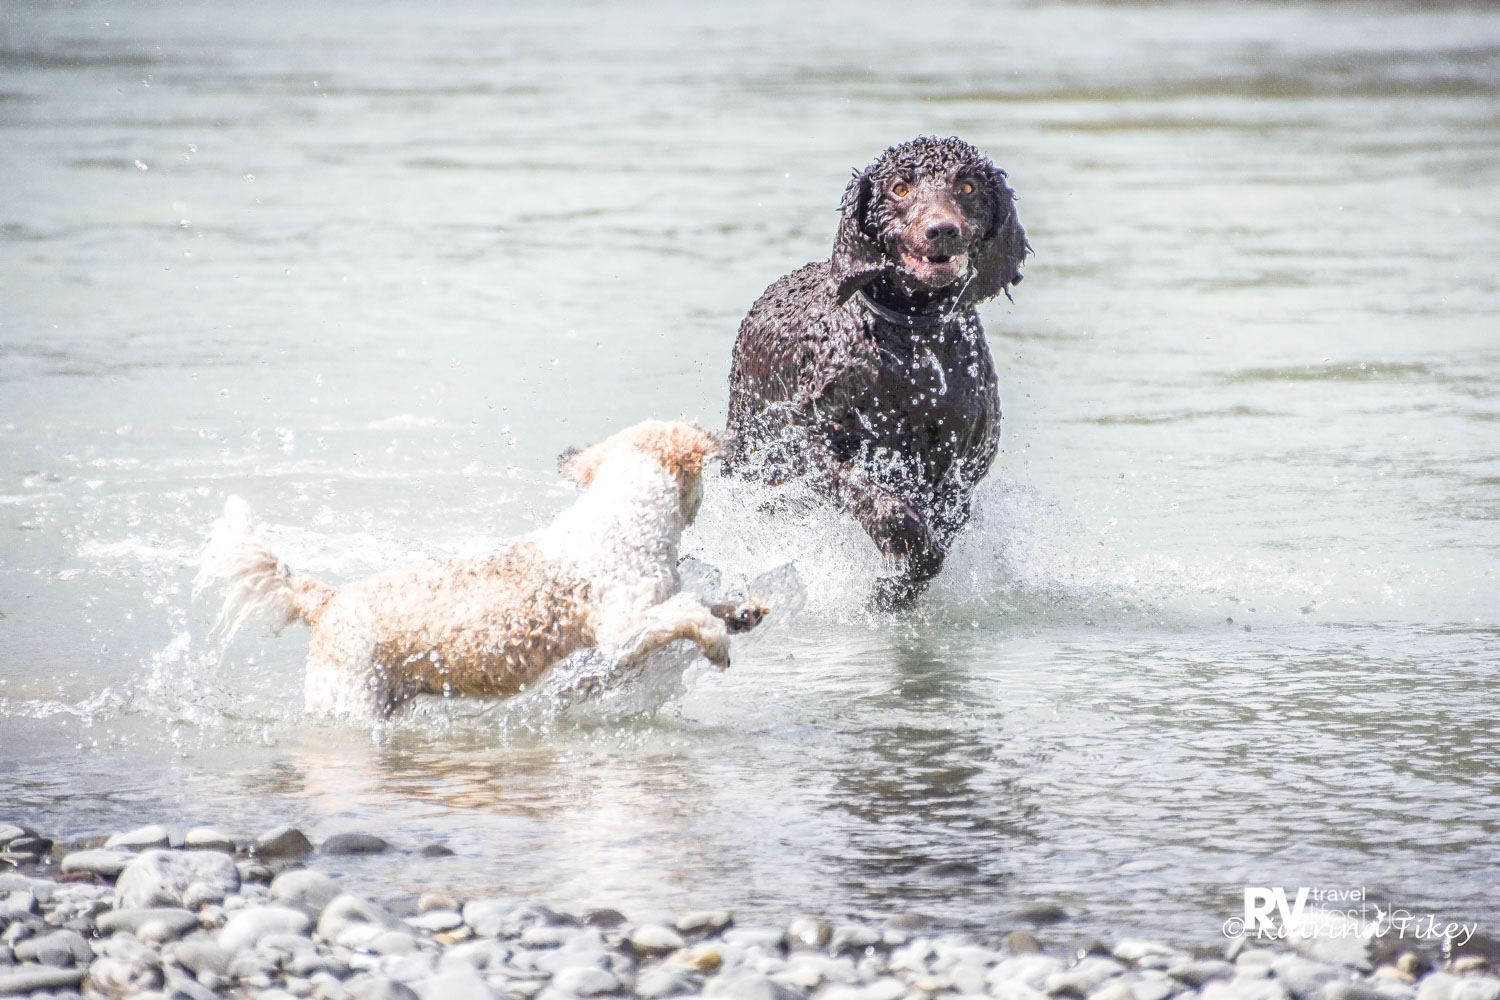 There's nothing like a play in the river to cool off